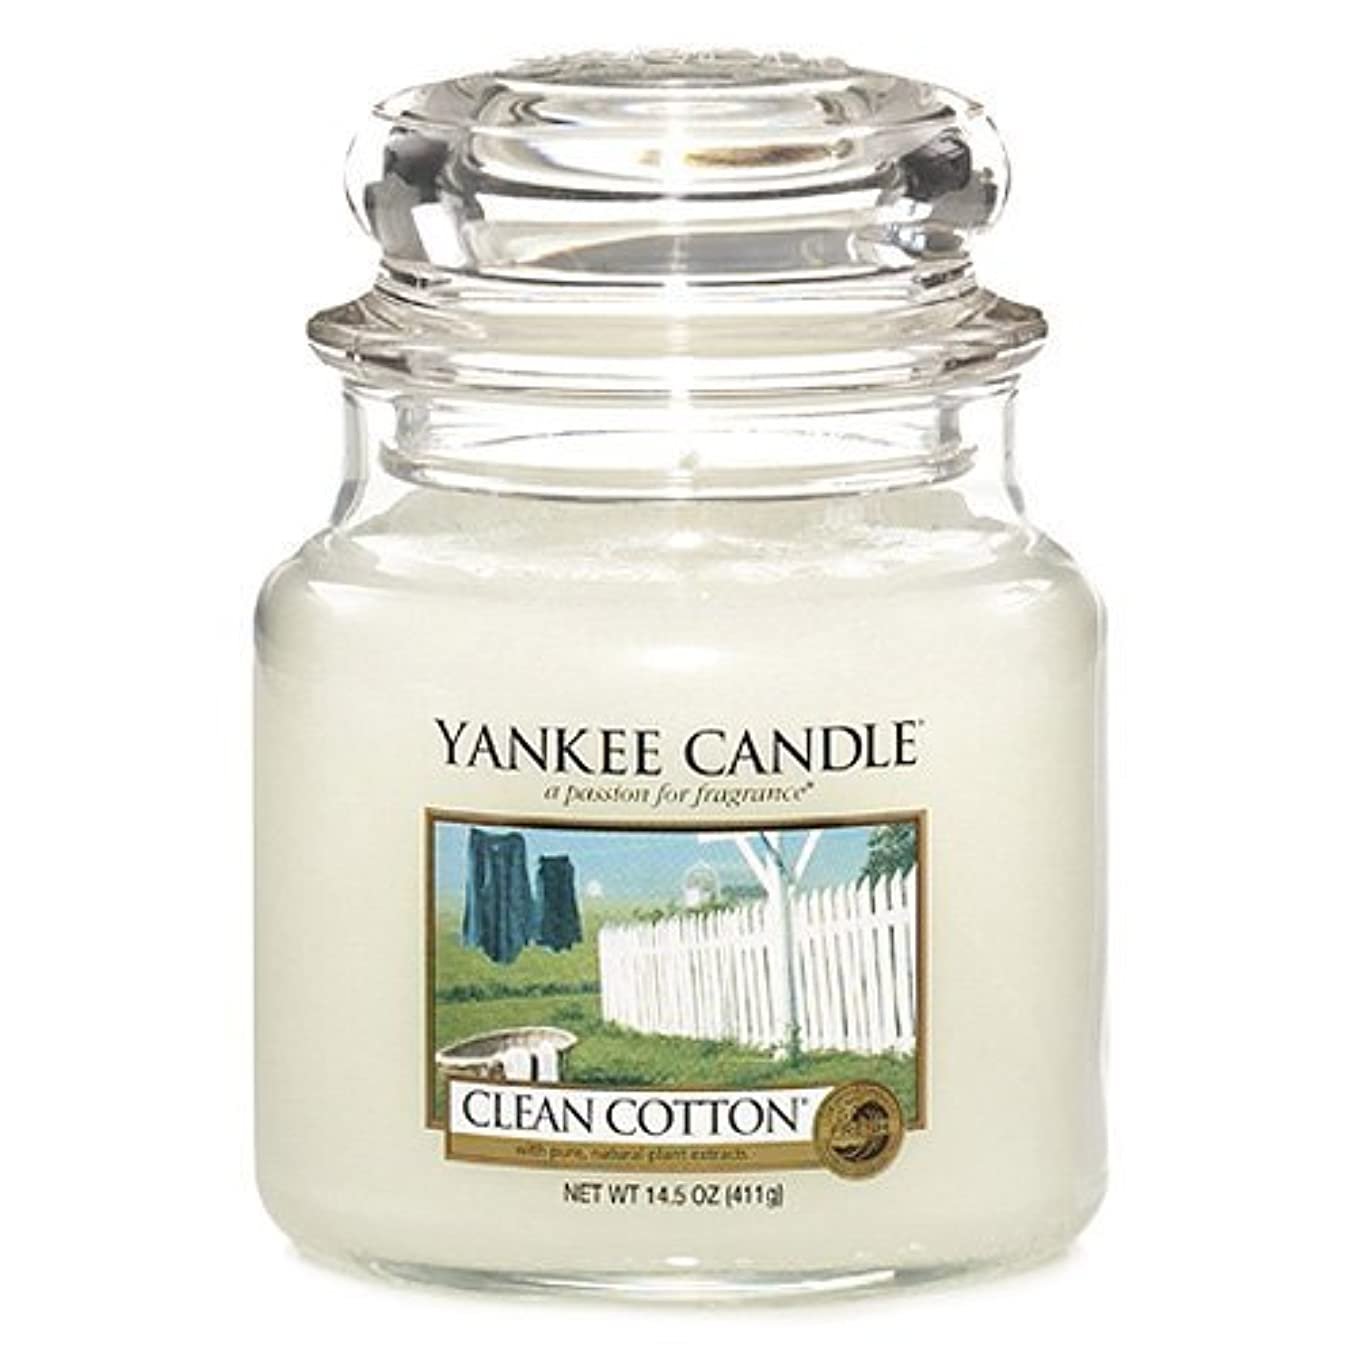 人回転やけどYankee Candle- Medium Clean Cotton Jar Candle 1010729 by Yankee Candle [並行輸入品]